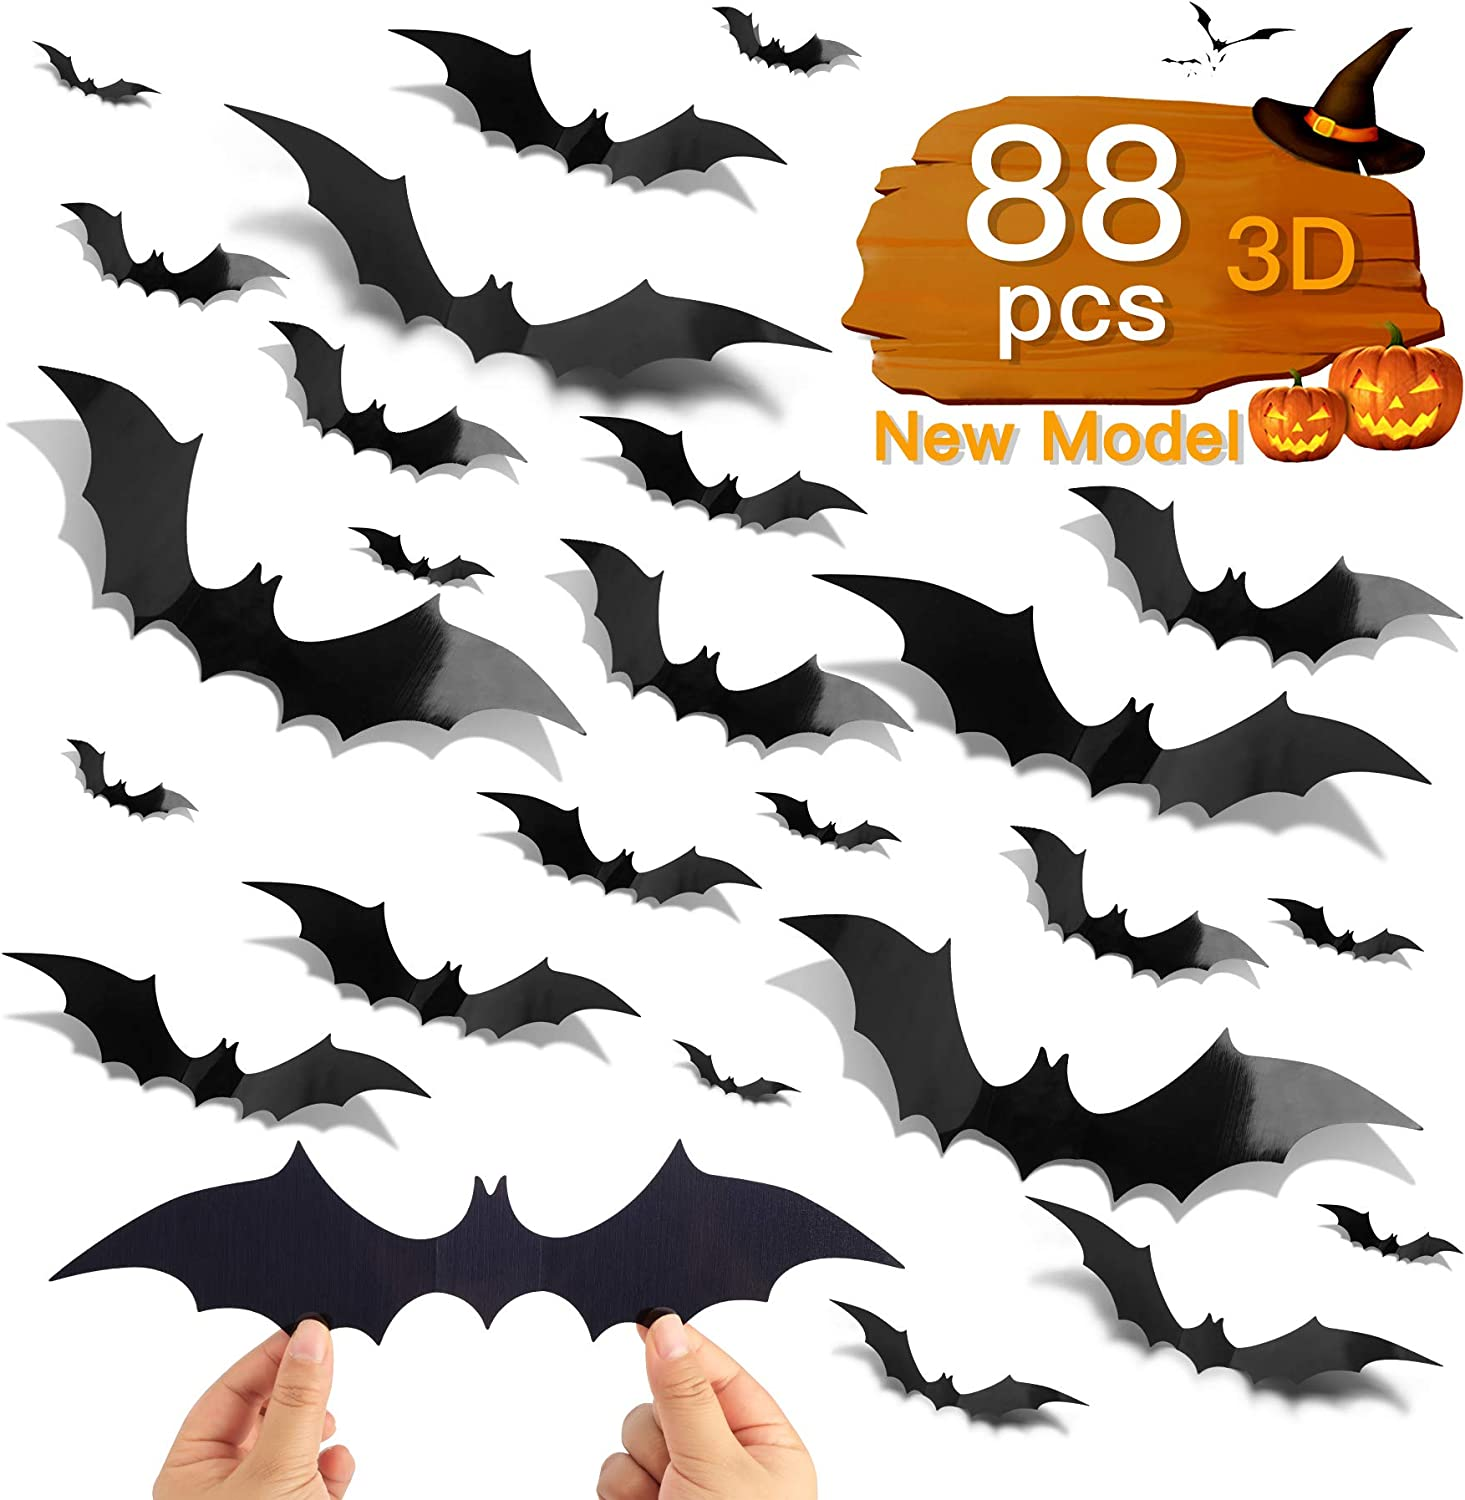 88pcs DIY Halloween Decorations Party Supplies, PVC 3D Halloween Ornaments Scary Bats Wall Decals Window Stickers, Halloween Eve Home Wall Halloween Decor Supplies